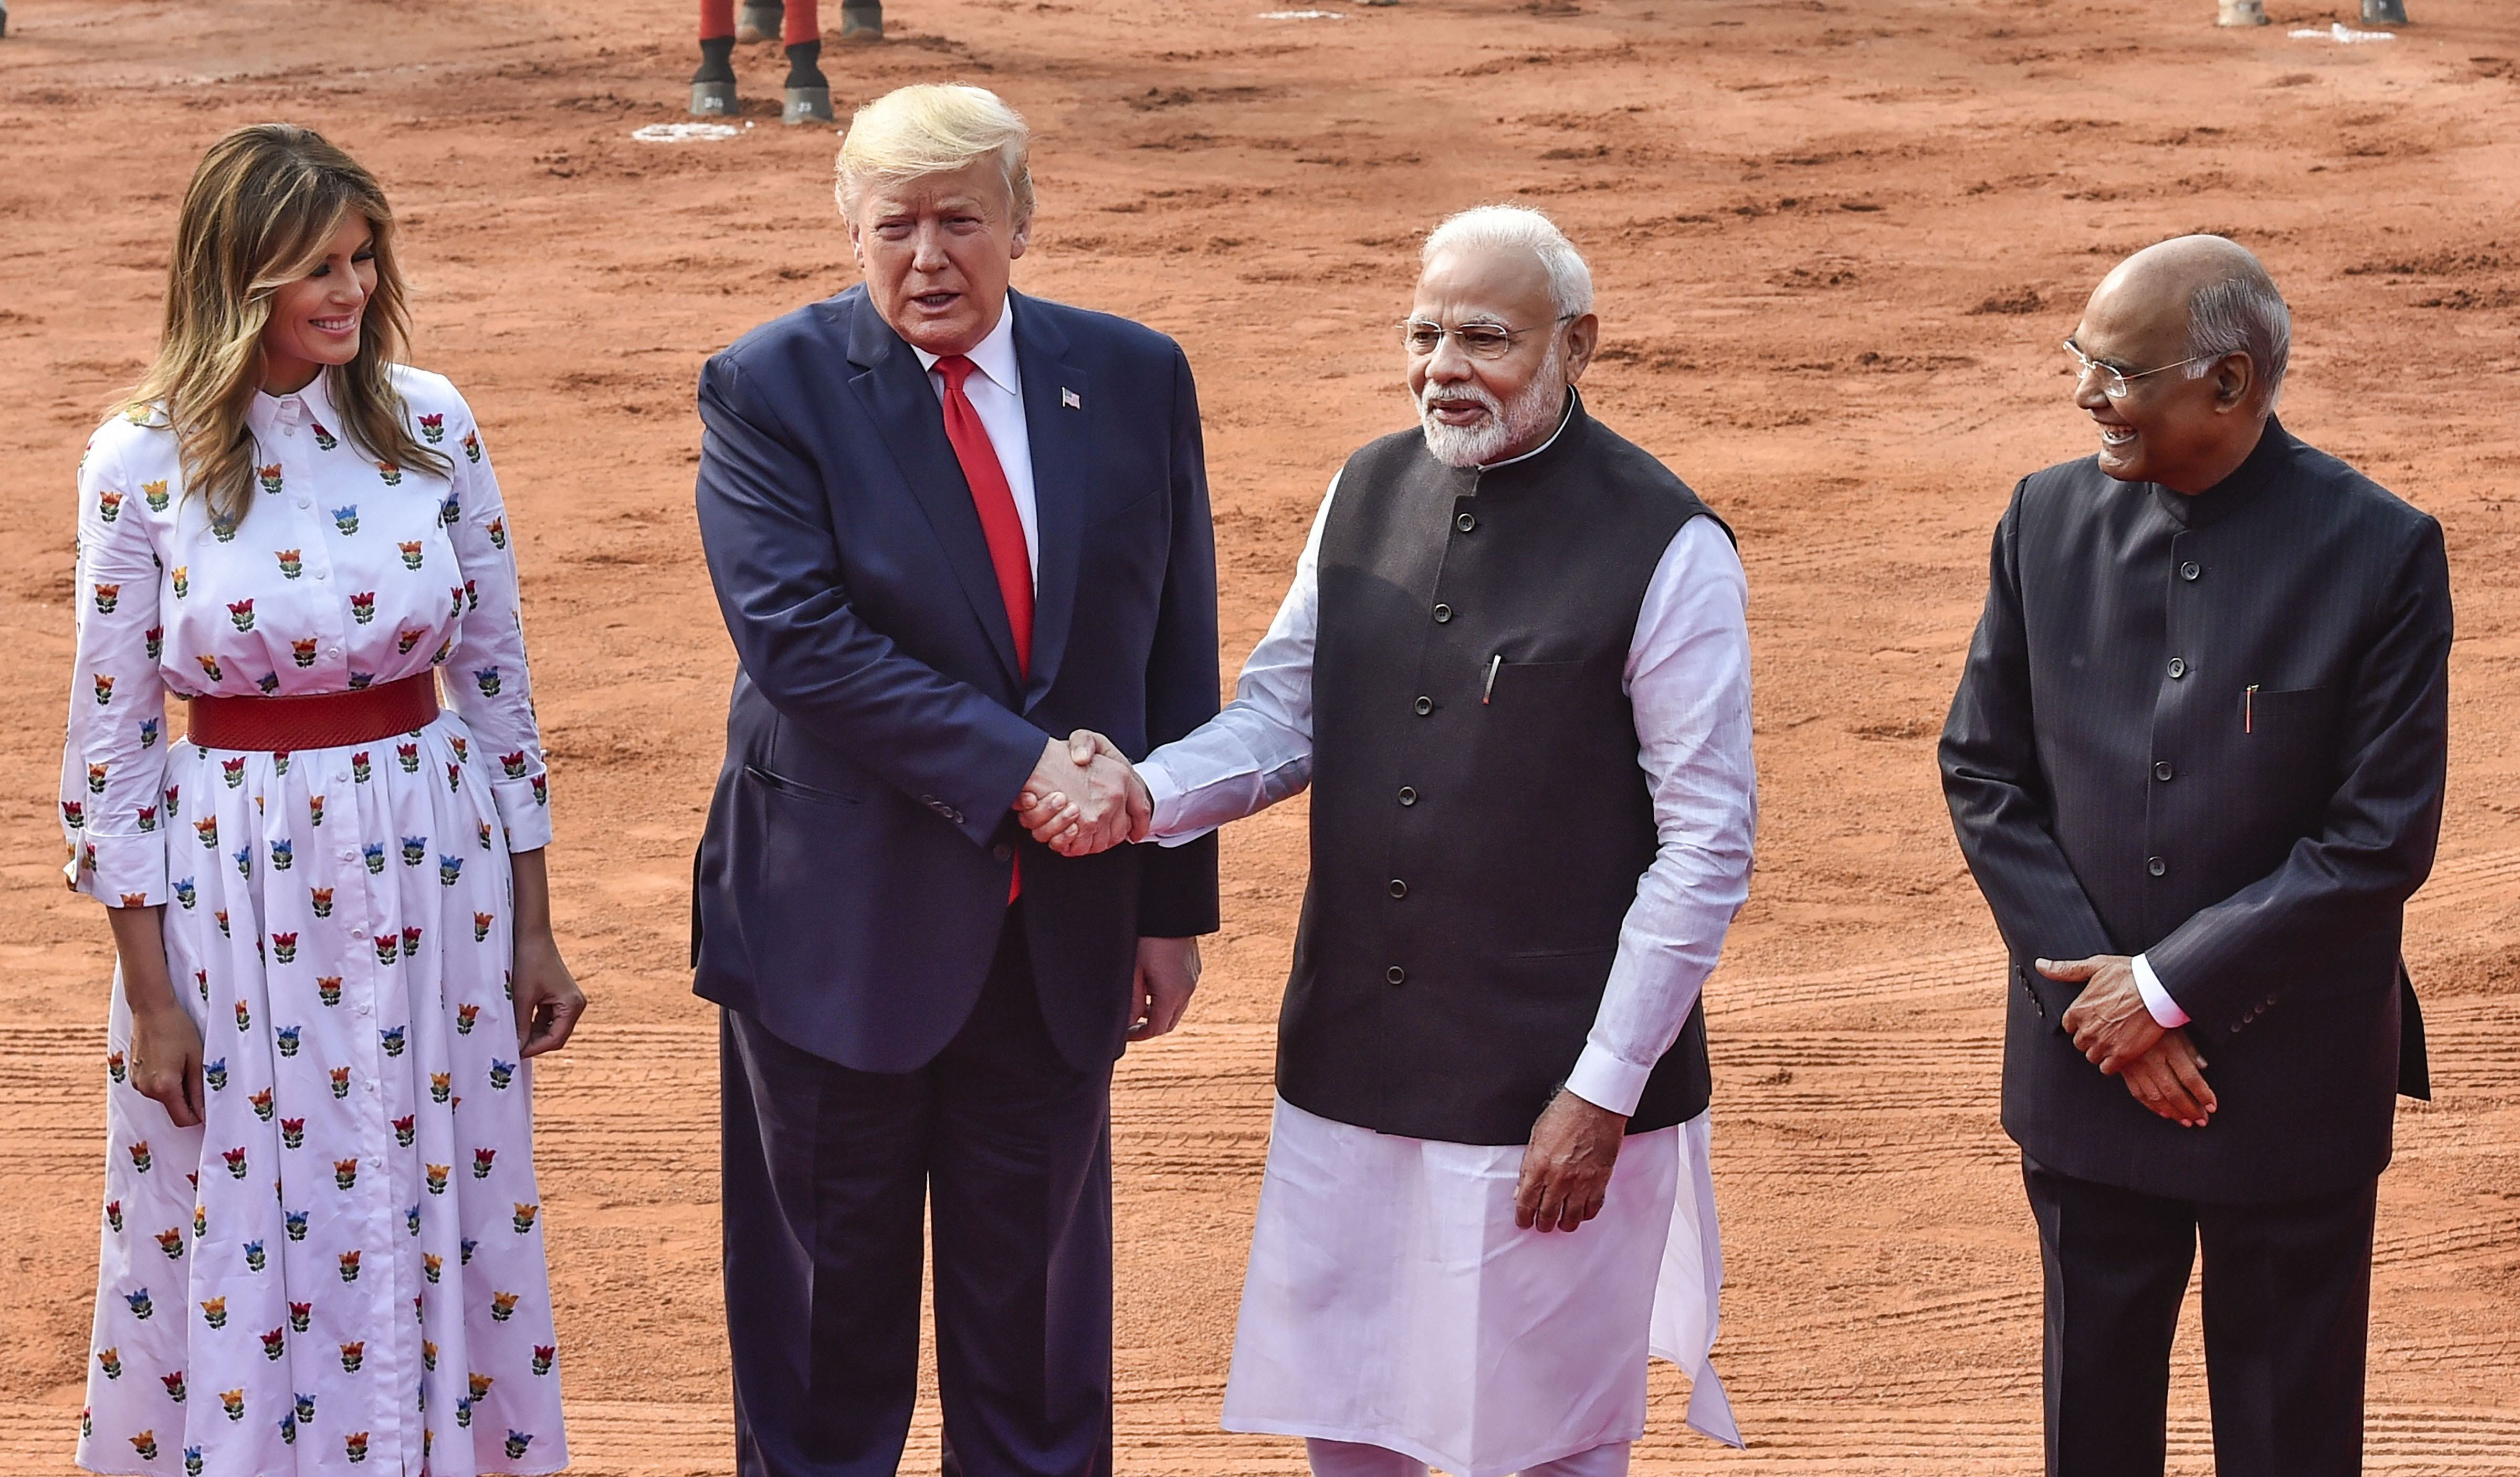 US President Donald Trump and US First Lady Melania Trump being welcomed by President Ram Nath Kovind and Prime Minister Narendra Modi during a ceremonial reception at Rashtrapati Bhavan in New Delhi, Tuesday, February 25, 2020